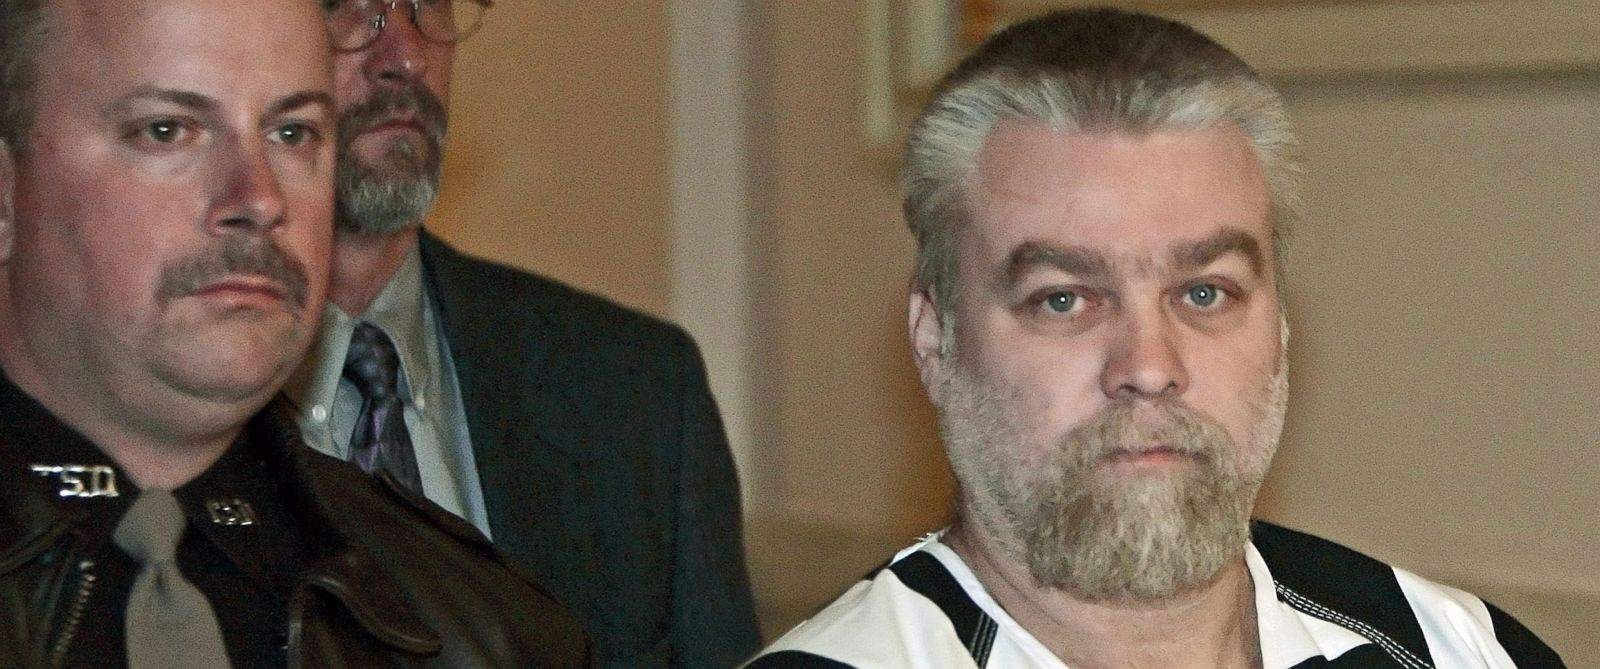 PHOTO: Steven Avery, right, is escorted and being charged with killing Teresa Halbach, into a Manitowoc County Courtroom for his preliminary hearing, Dec. 6, 2005, in Manitowoc, Wis.